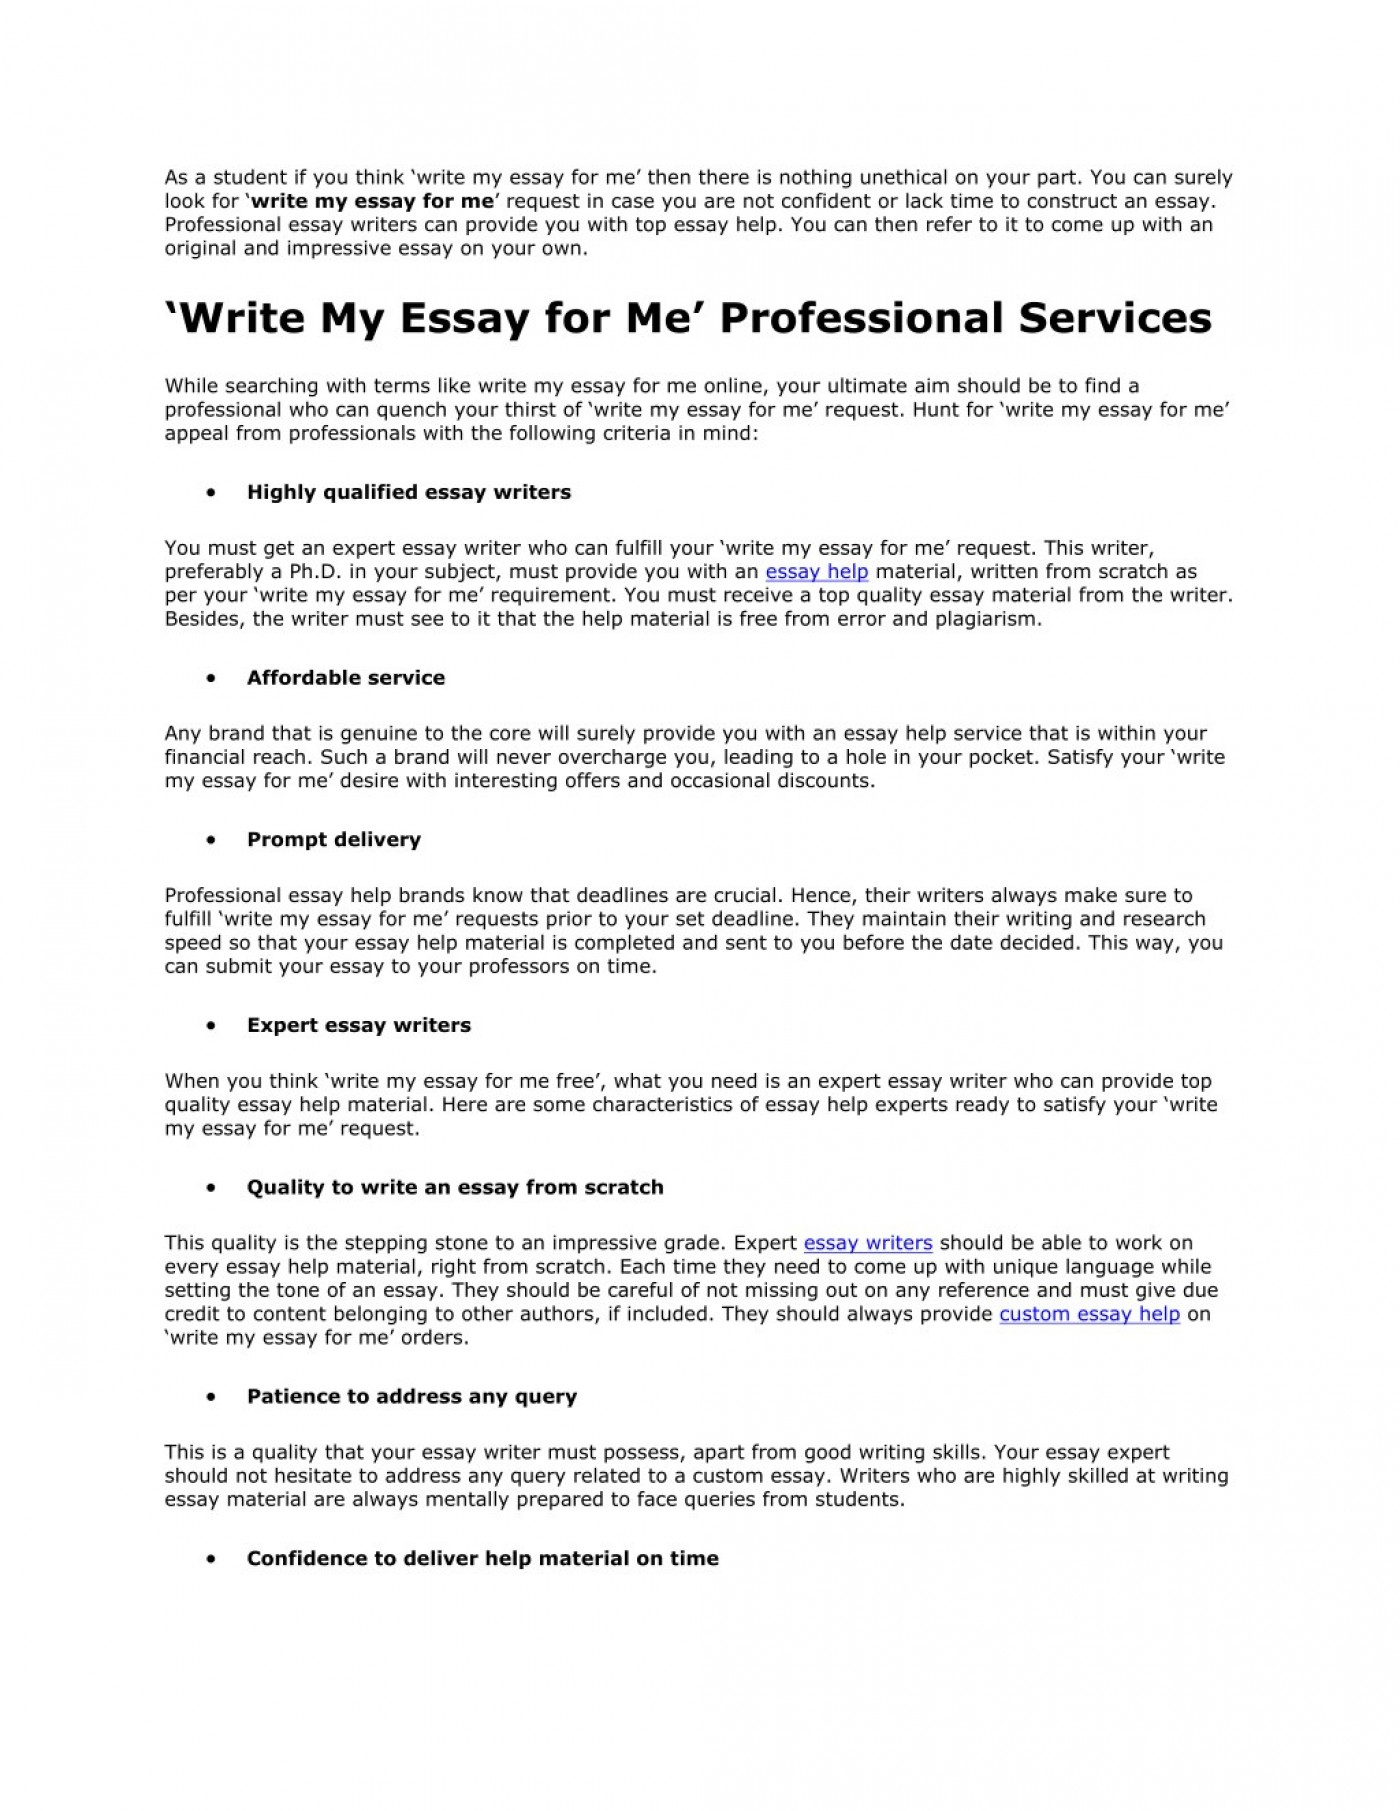 017 Write My Essay For Me Example As Student If You Think Surprising Free College Online 1400